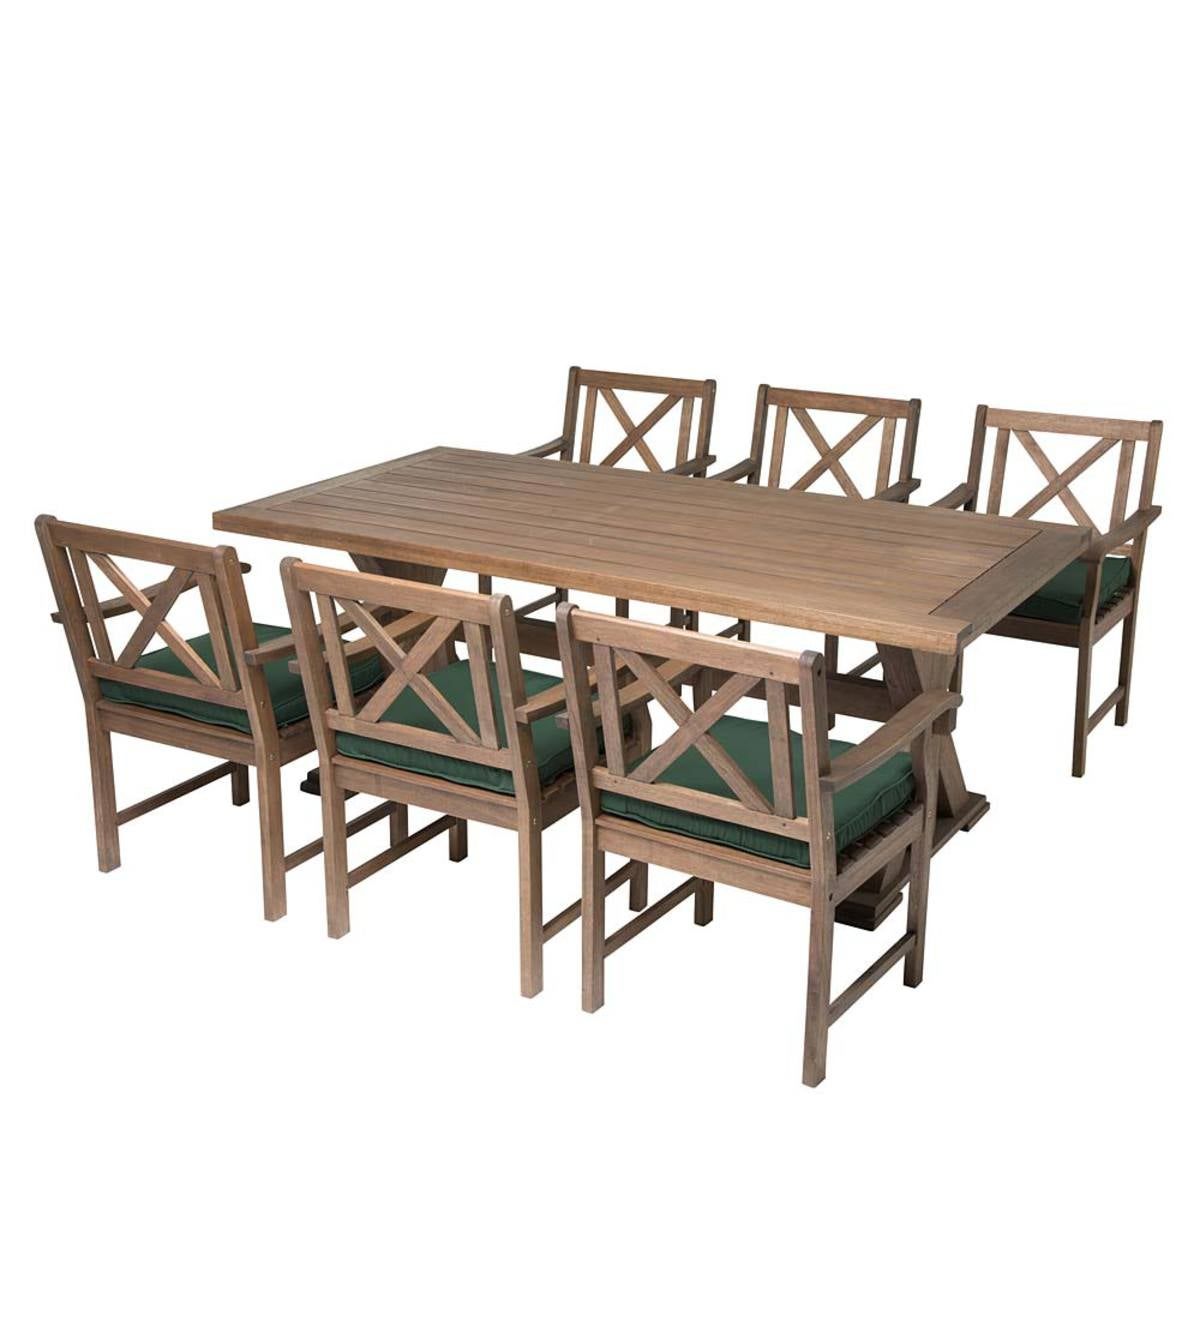 Claremont outdoor dining furniture eucalyptus table and six chairs natural